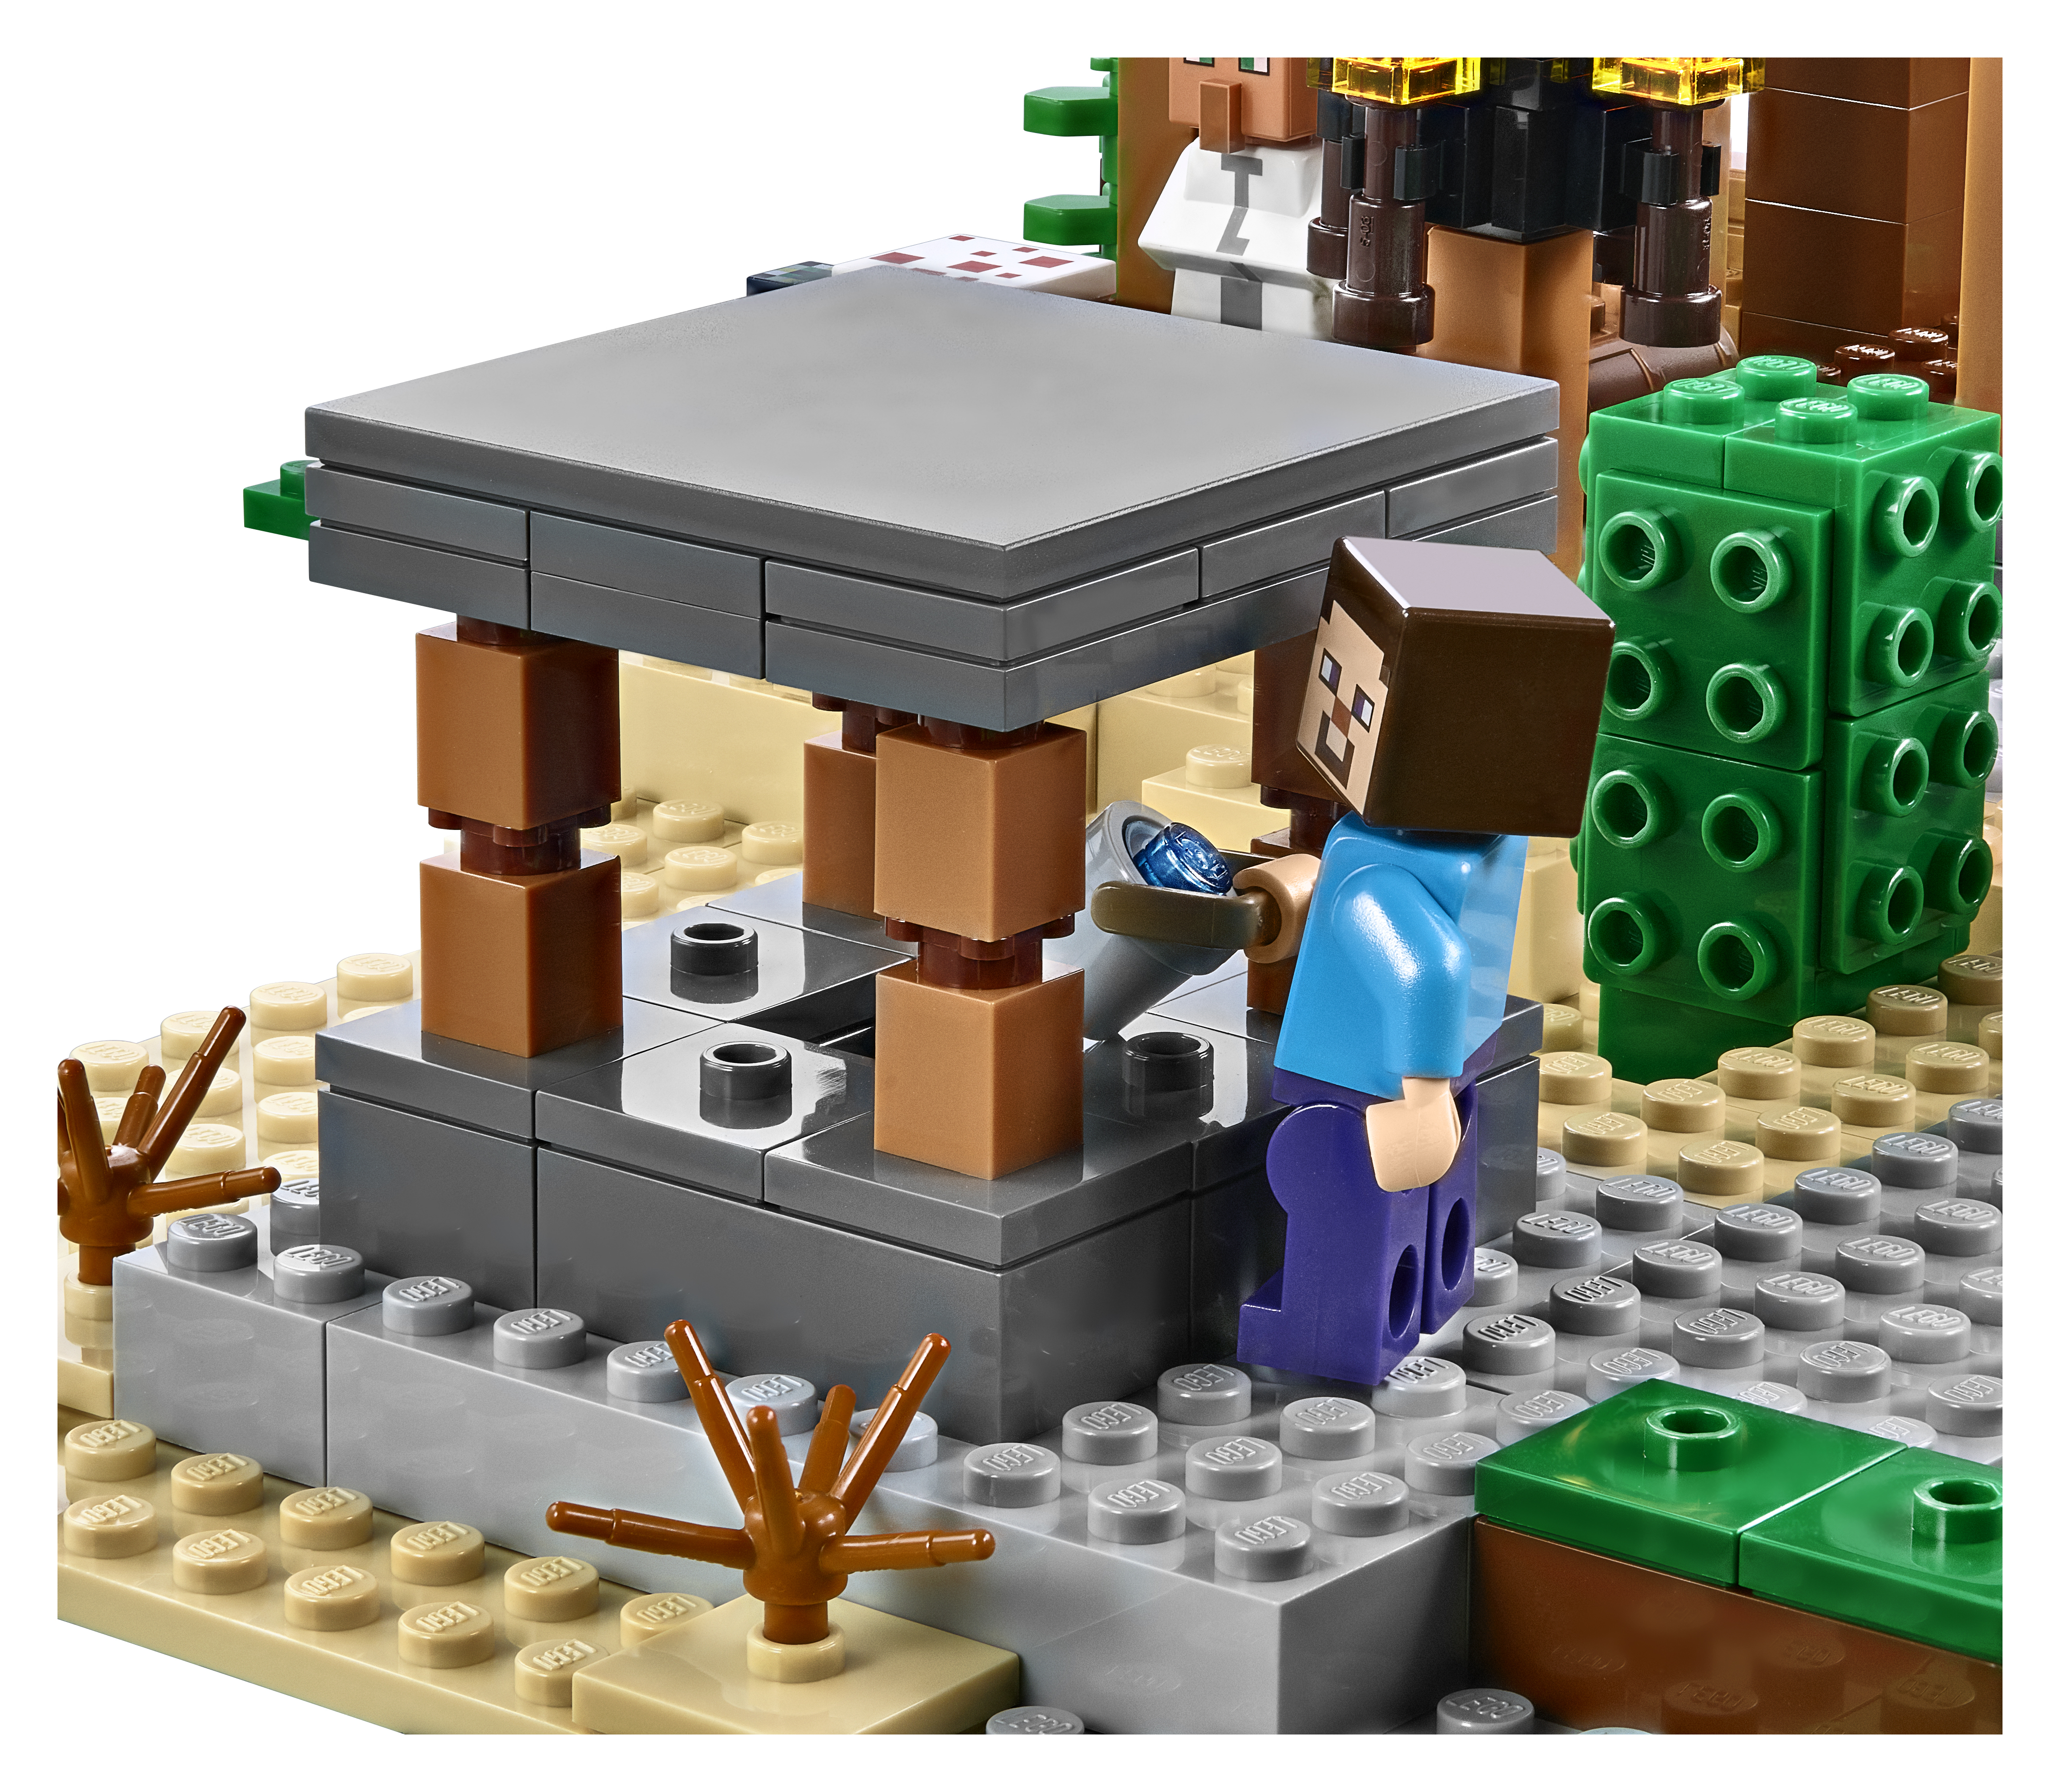 Lego Announces 21128 The Village  The Largest Minecraft Set Yet